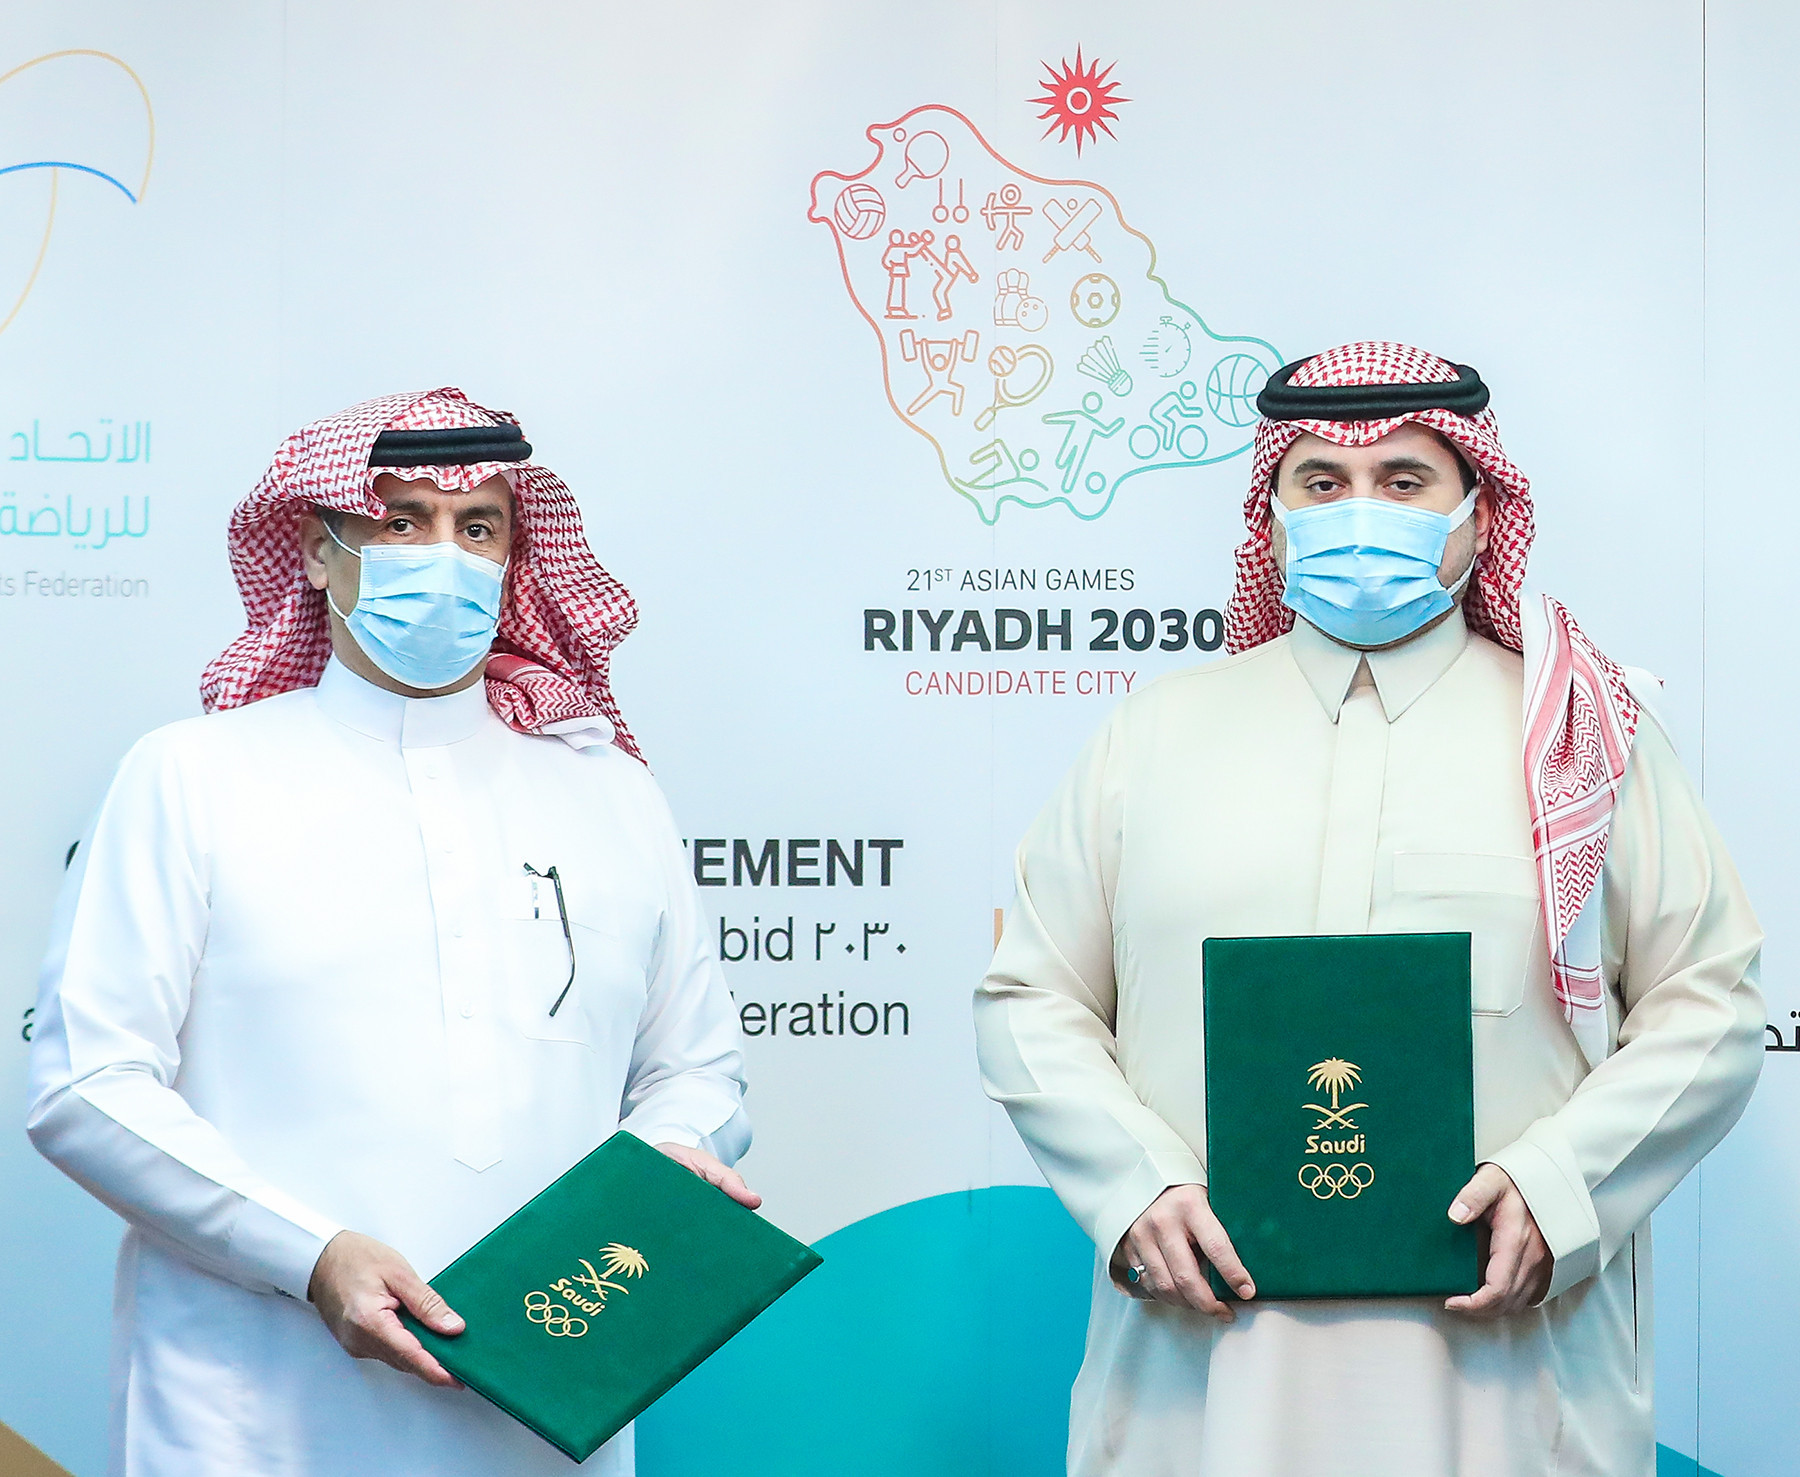 The launch of the initiative is part of an MoU signed by Riyadh 2030, the SAOC and the Saudi Federation of School Sports ©Riyadh 2030